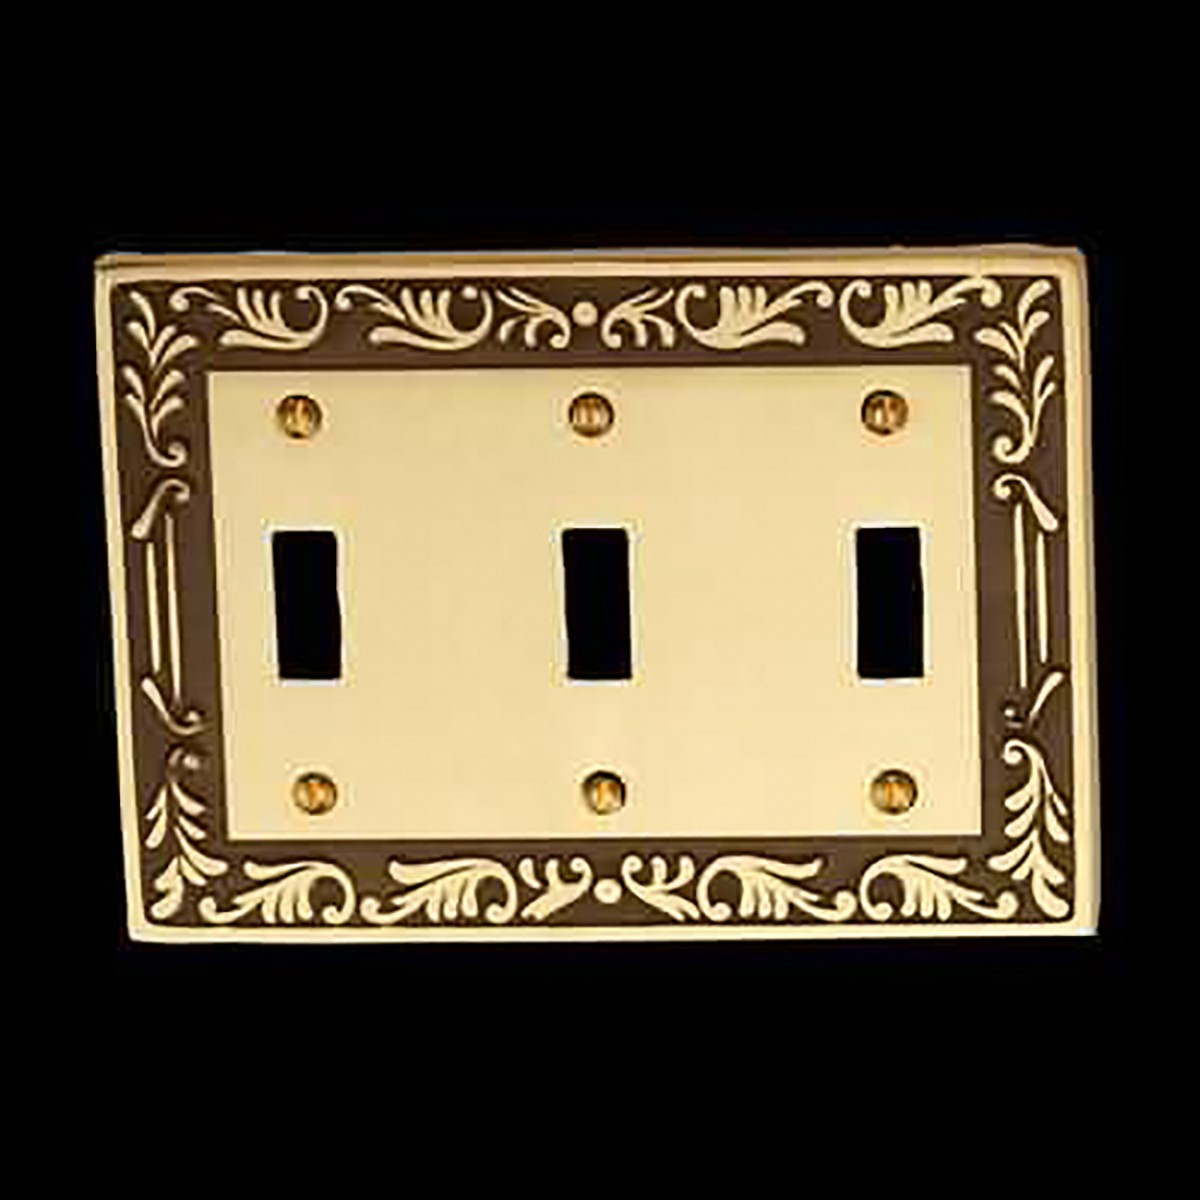 10 Victorian Switch Plate Triple Toggle Antique Solid Brass Switch Plate Wall Plates Switch Plates